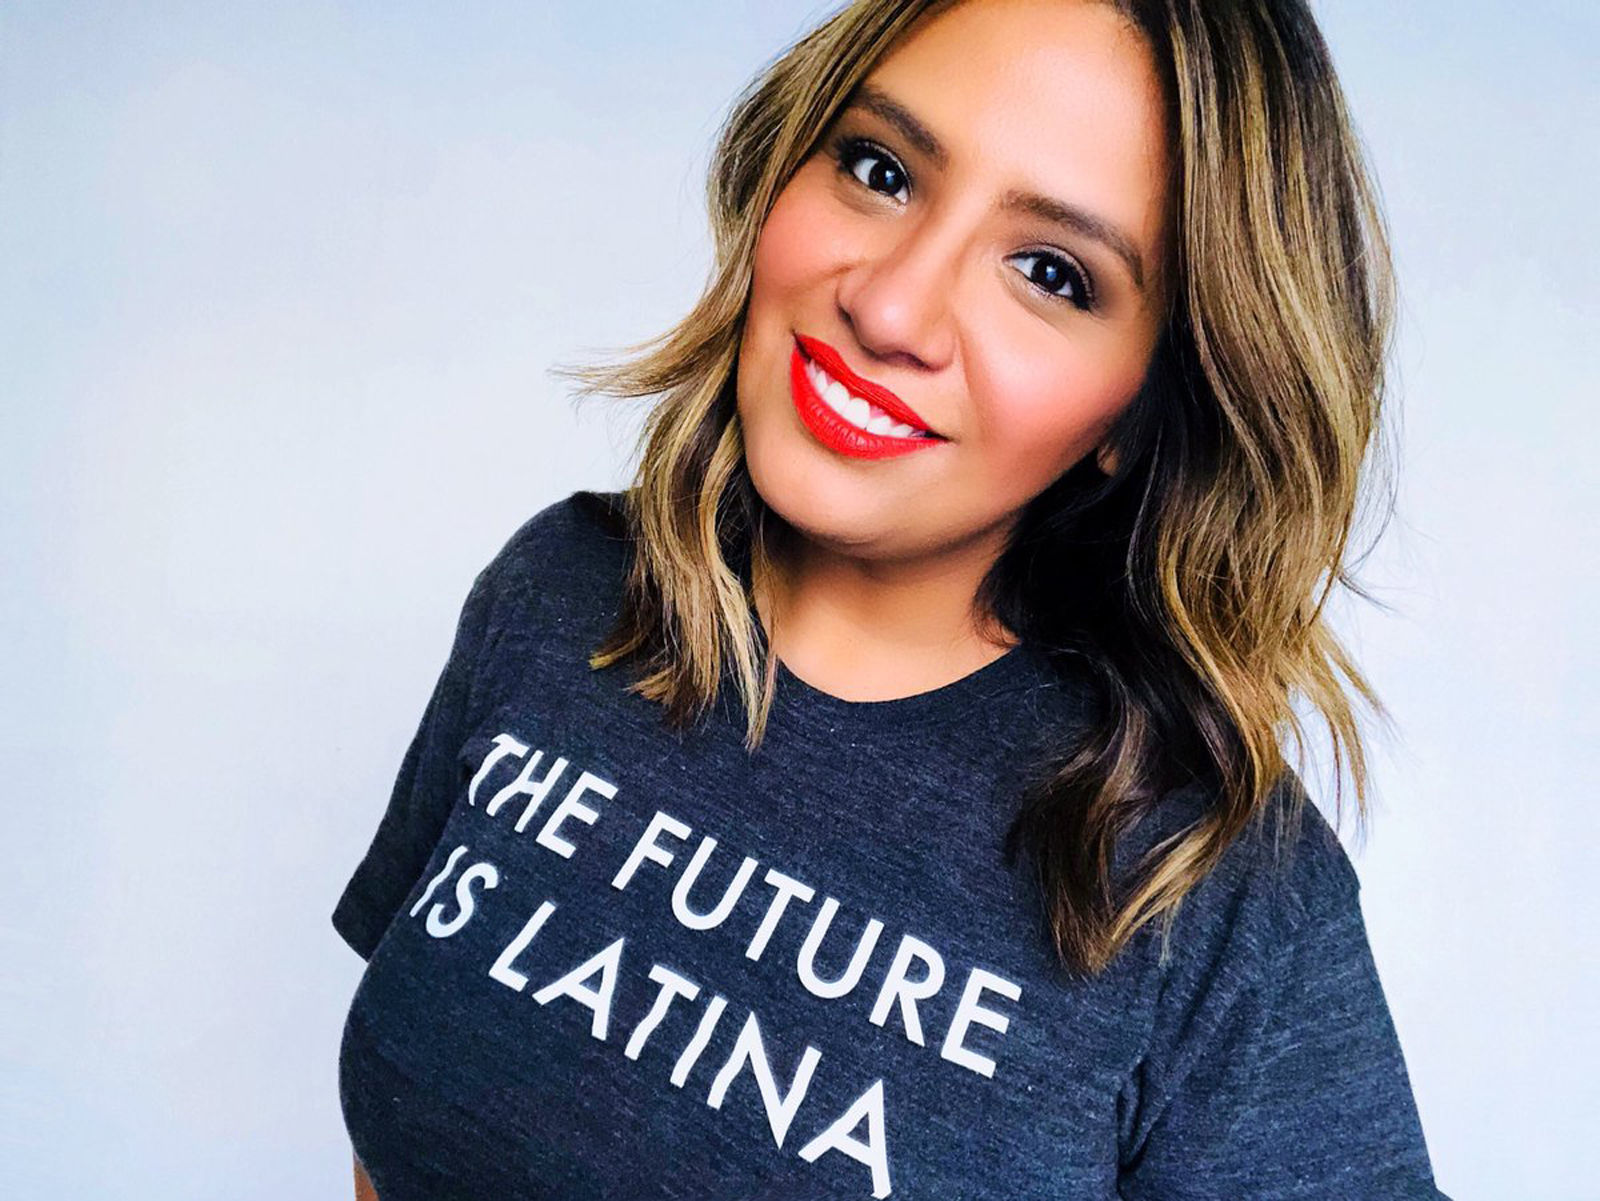 Cristela Alonzo nudes (14 foto and video), Ass, Leaked, Instagram, butt 2018